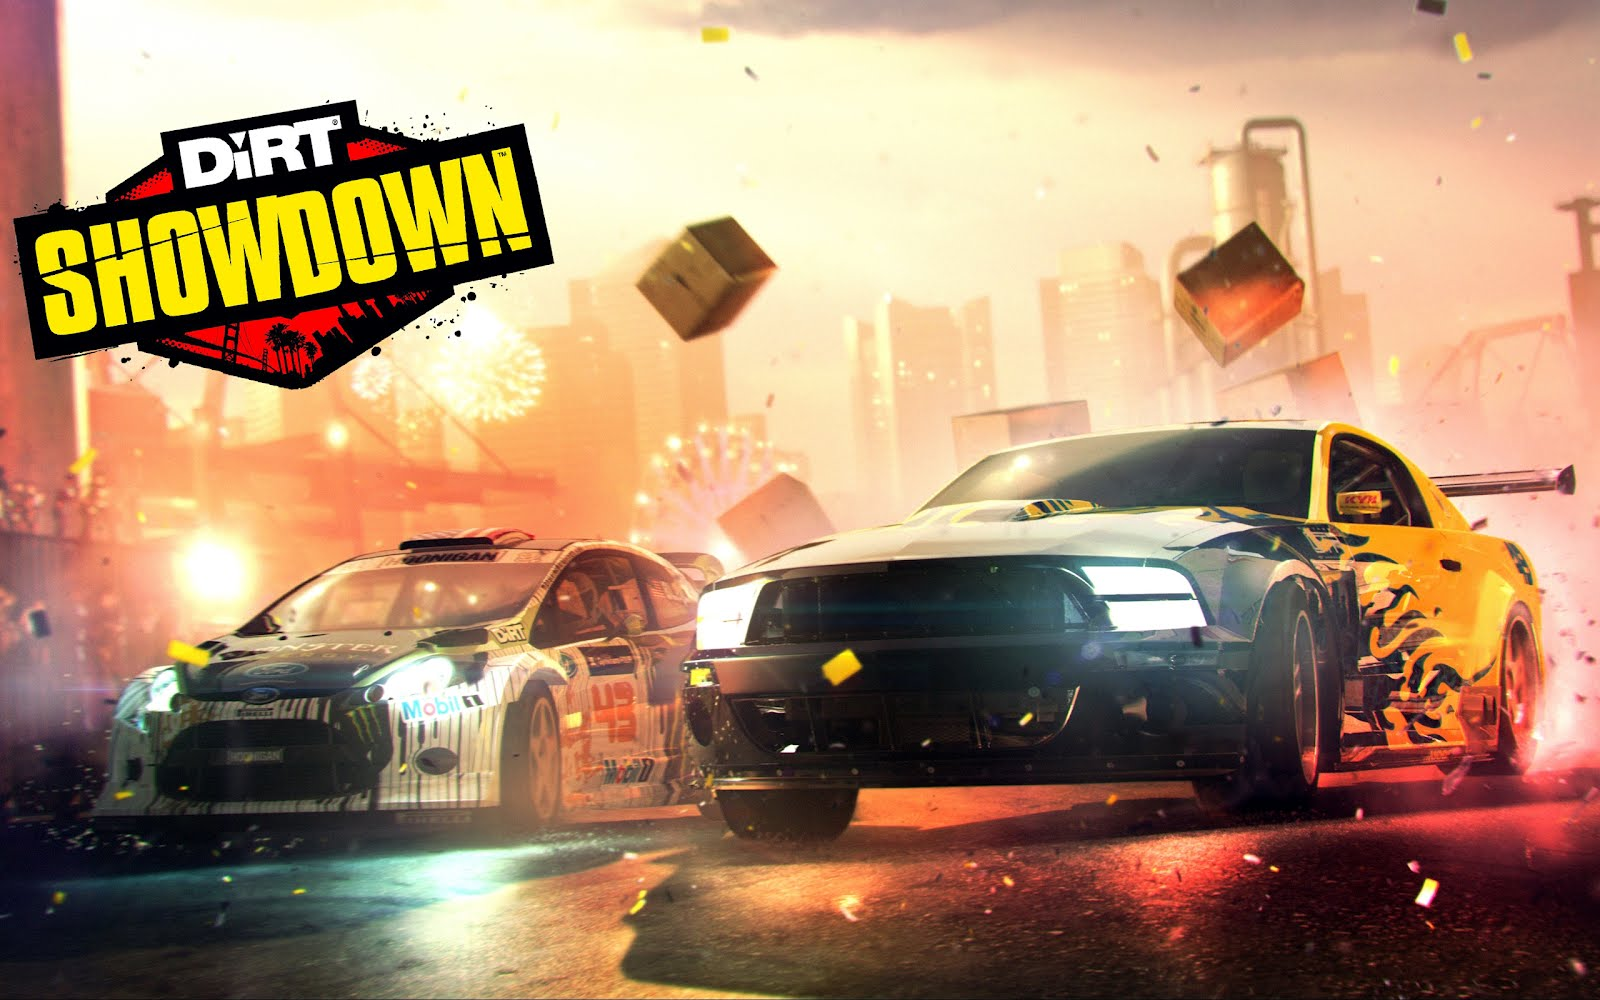 http://1.bp.blogspot.com/-l1_1inT452g/T1Sarde1NOI/AAAAAAAABjc/31rmjVNbaiU/s1600/dirt_showdown-wide.jpg